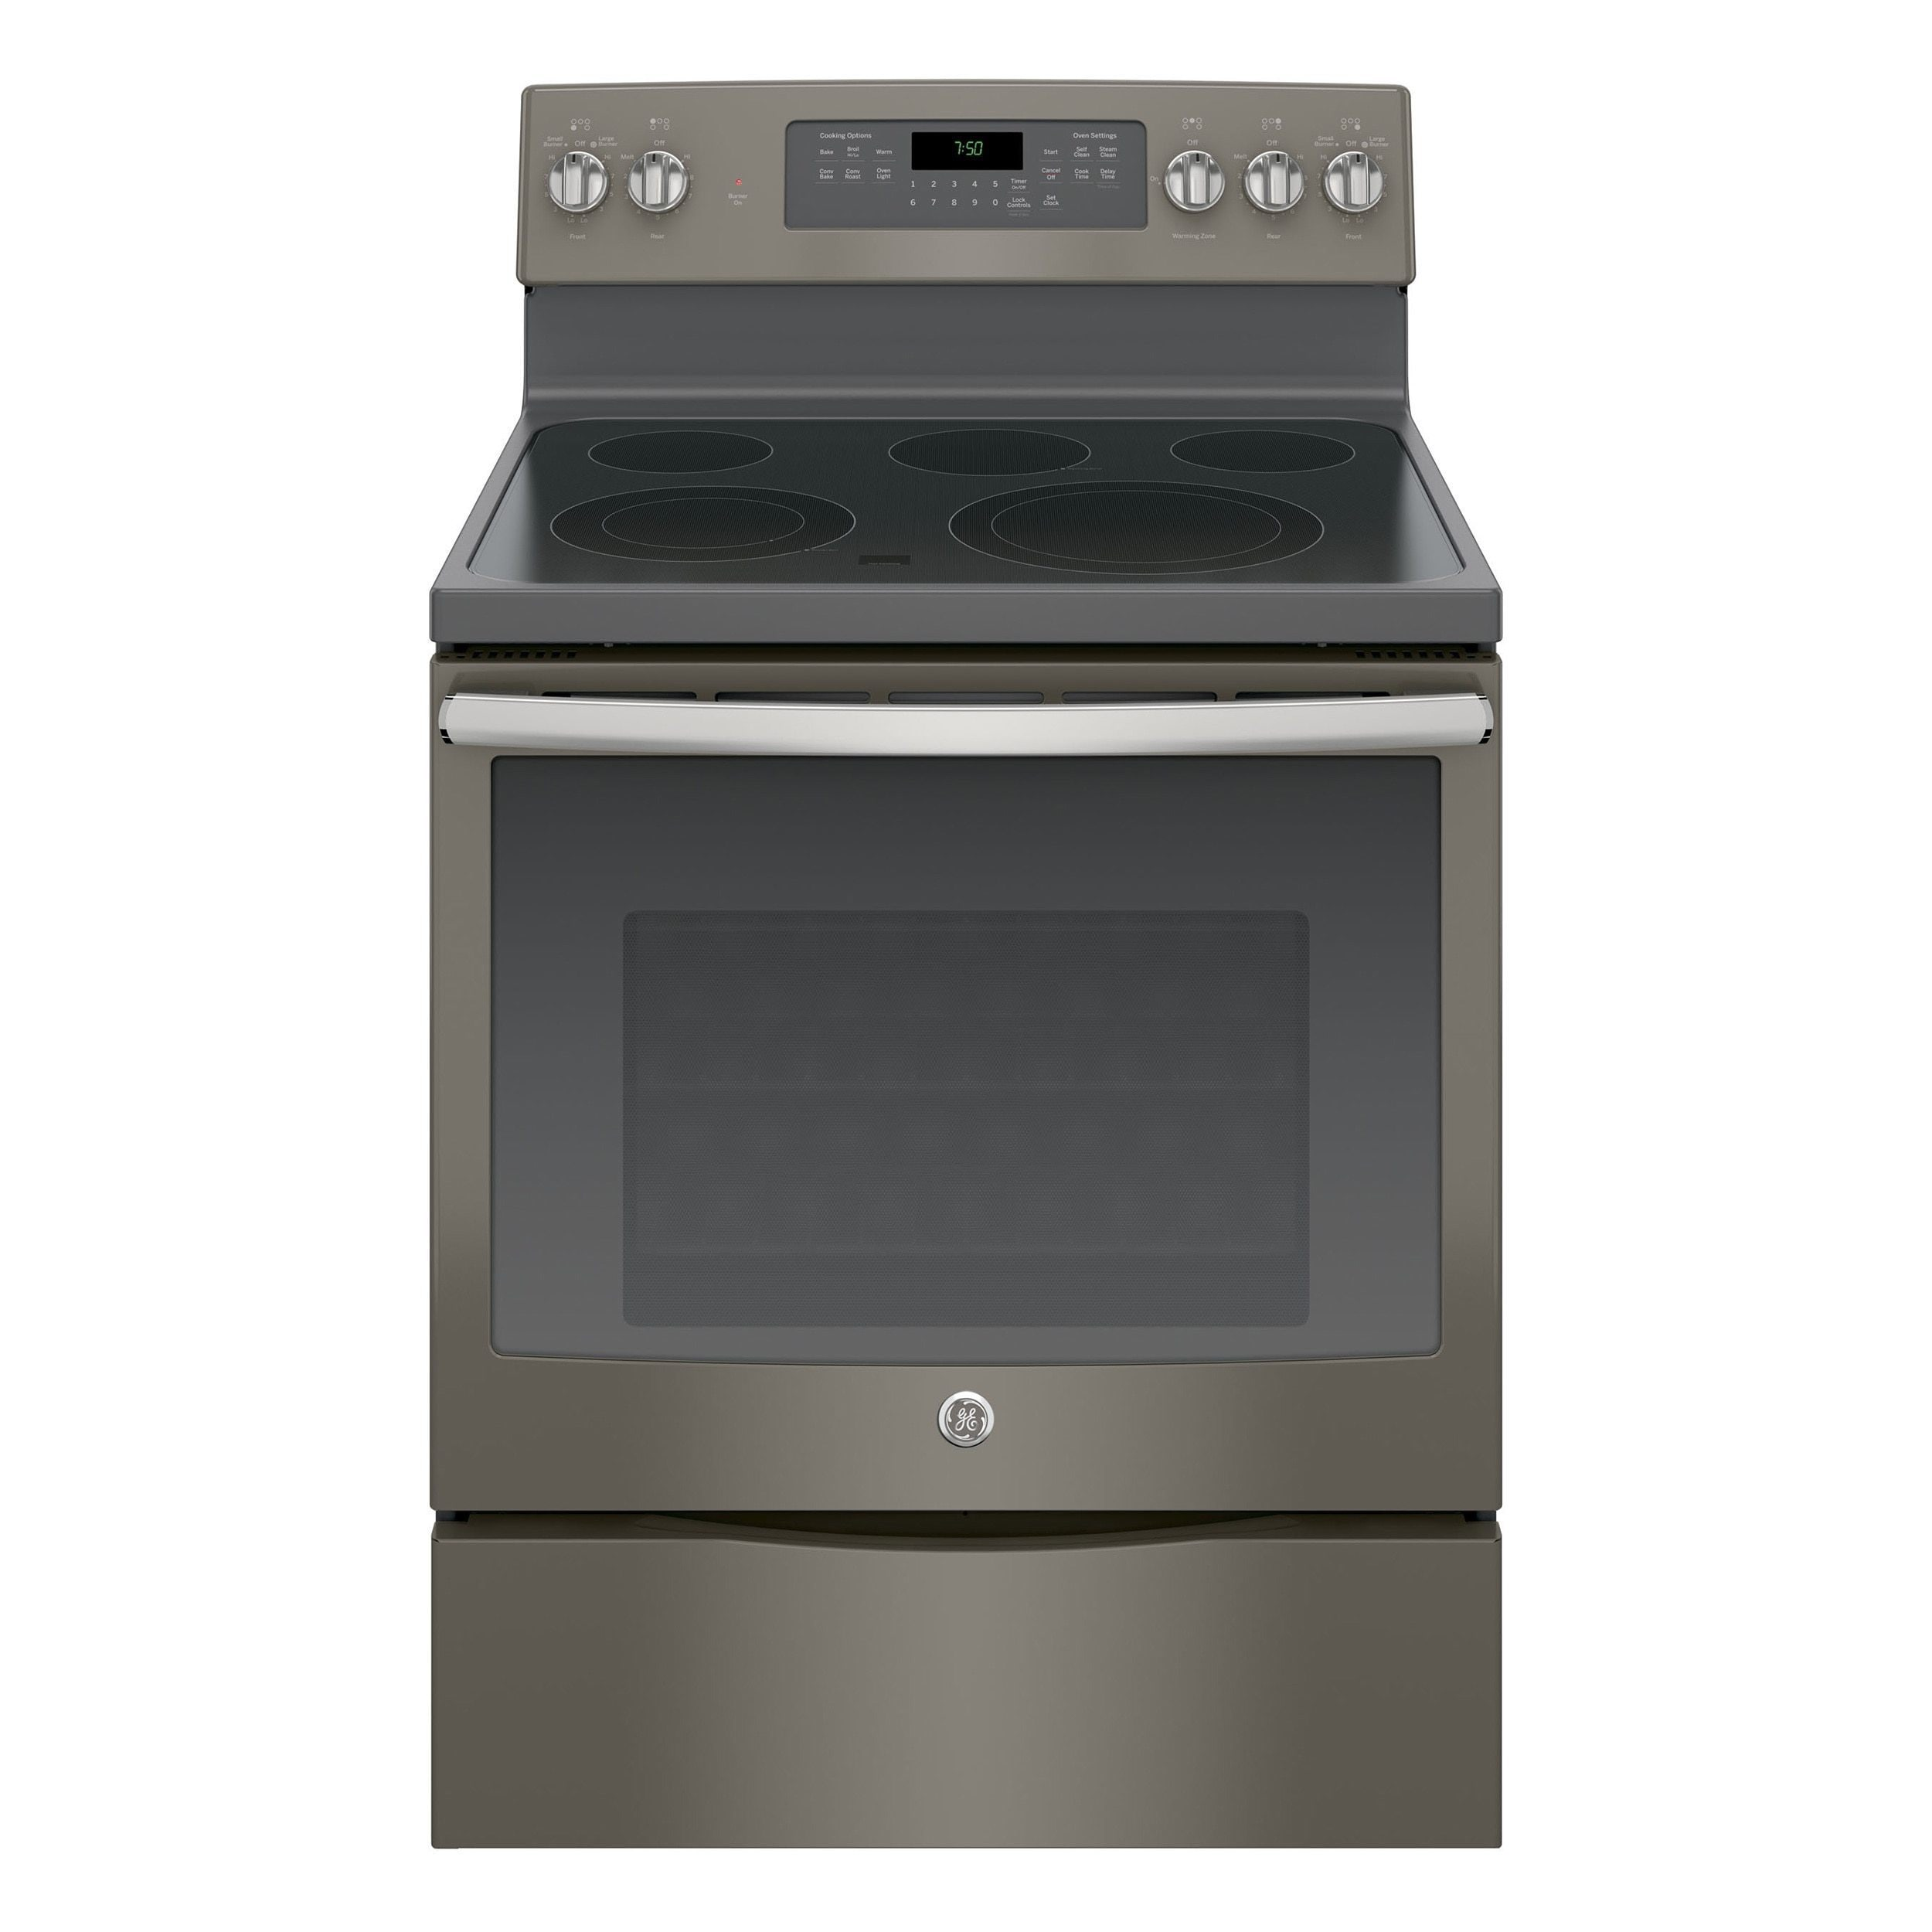 GE 30-inch Free-standing Electric Convection Range (Silve...